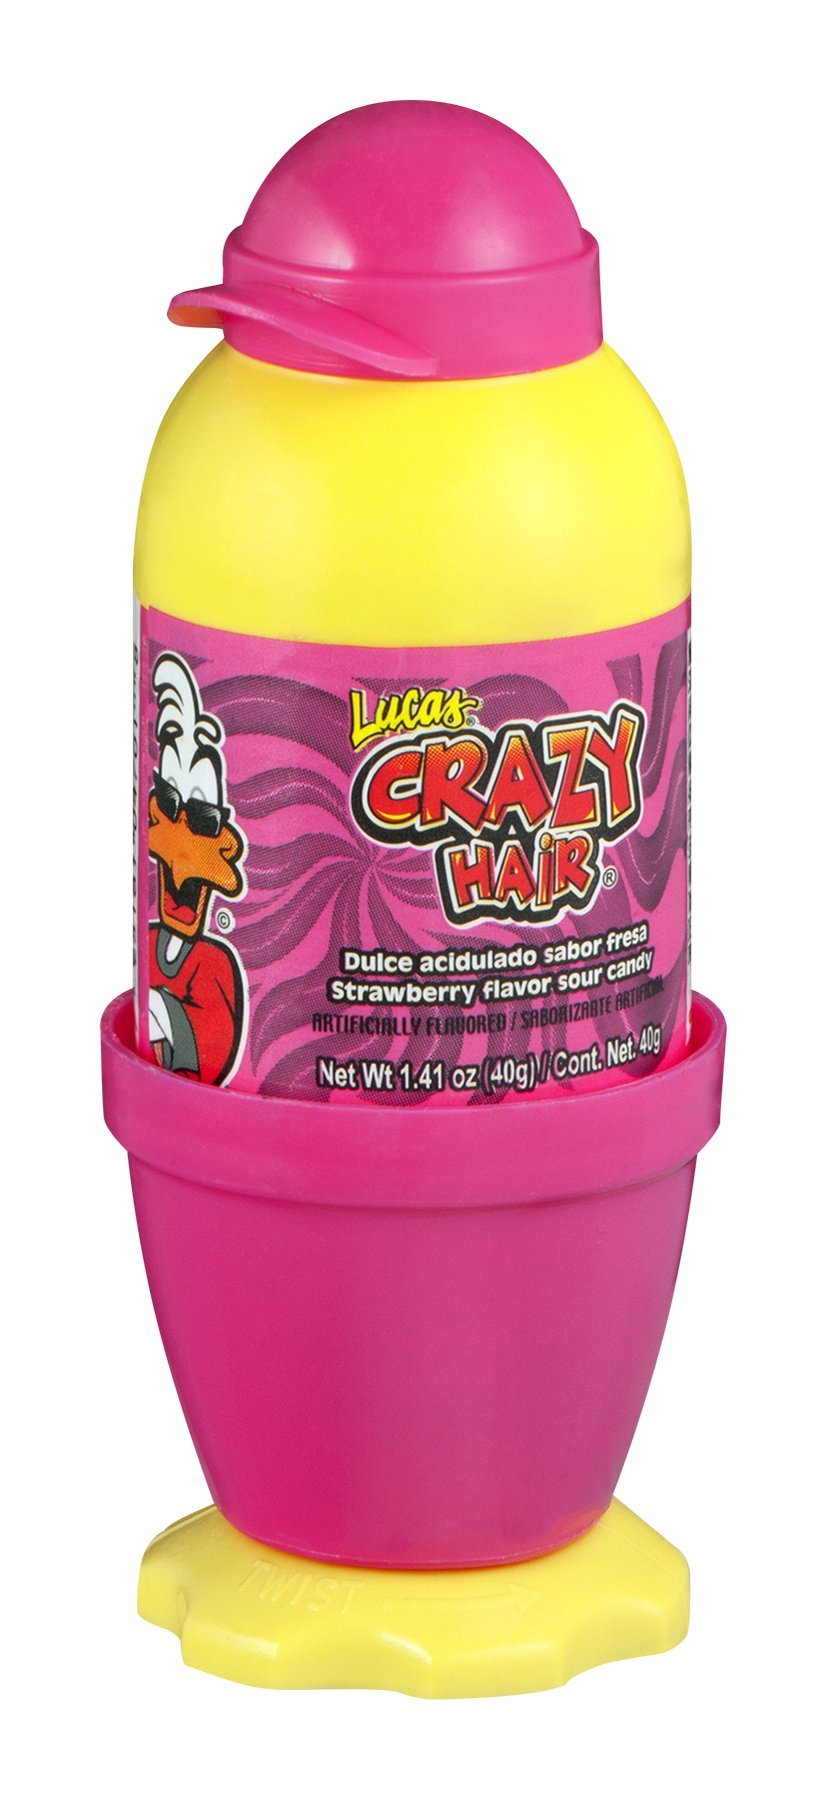 Lucas Crazy Hair Sour Candy Strawberry 12 CT (Pack of 12)